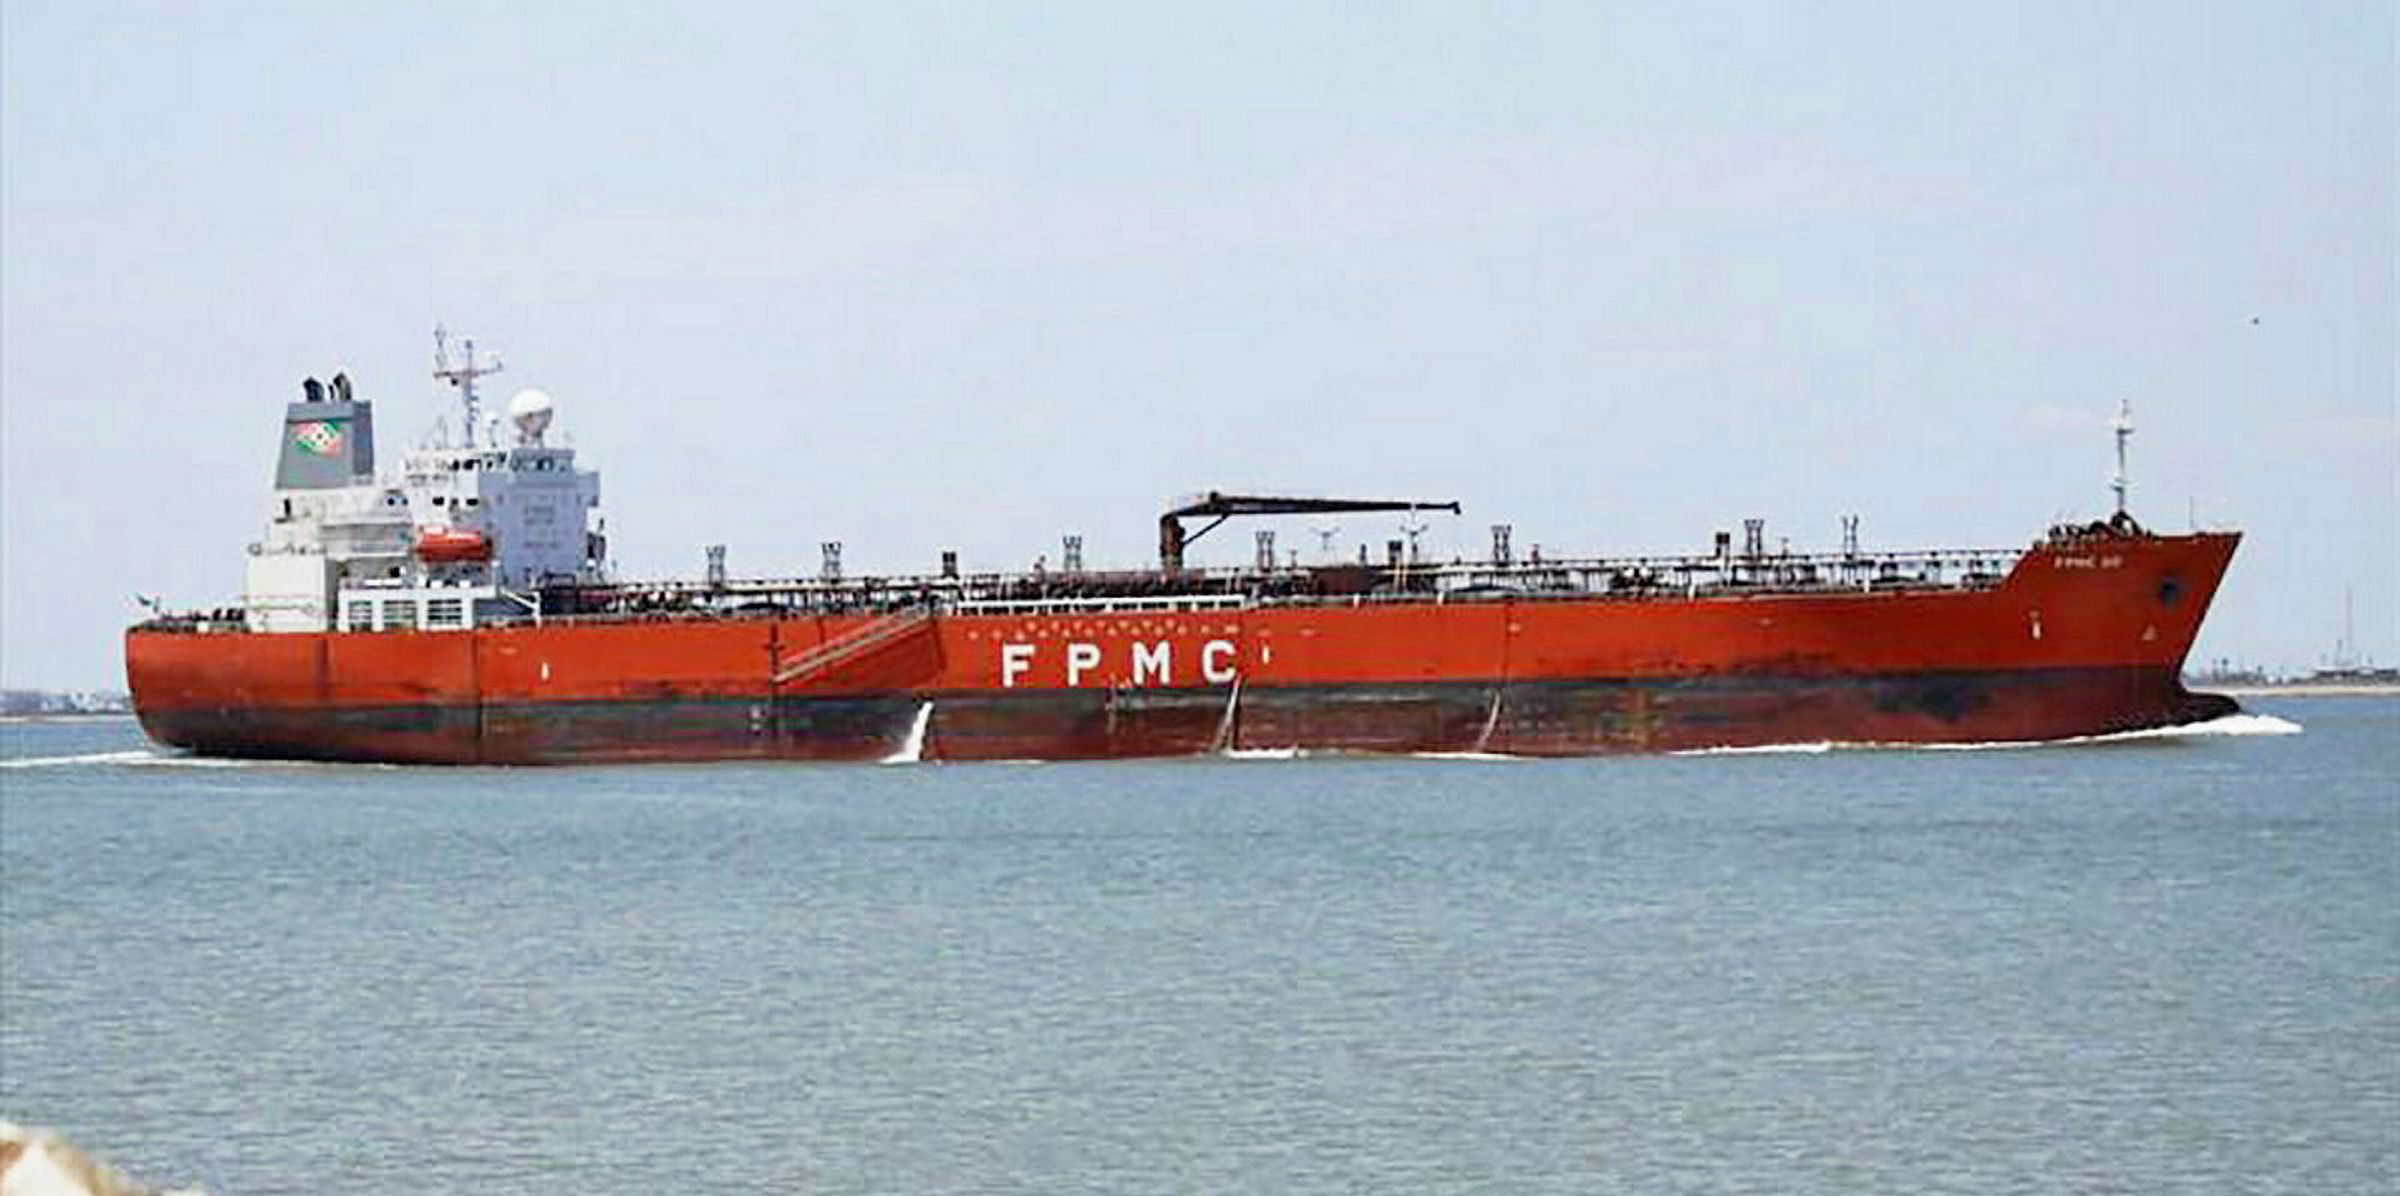 Formosa Plastics Marine sells MR tankers in fleet renewal